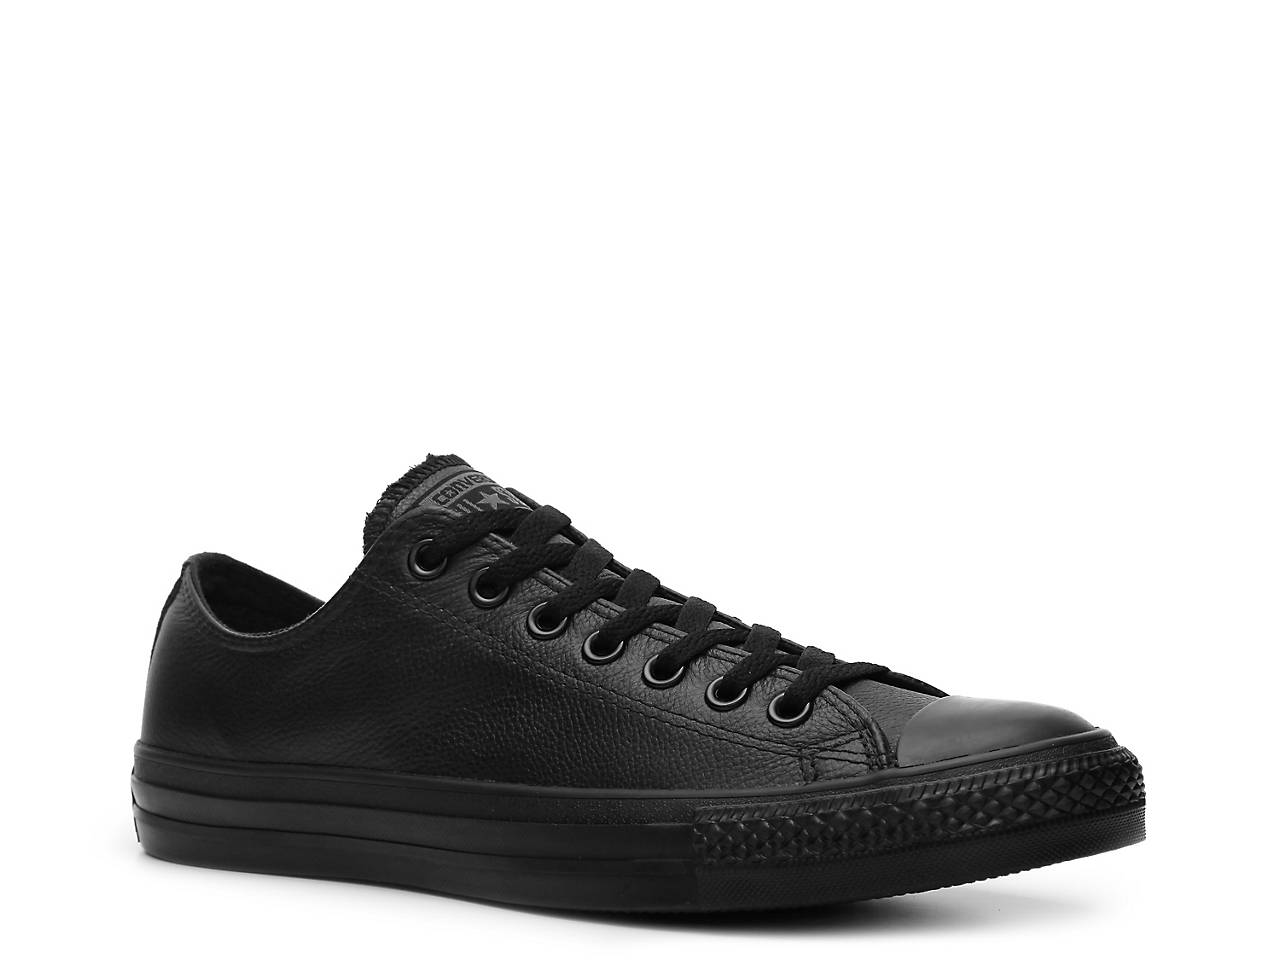 Converse Chuck Taylor Leather Sneakers ZENlO2xTN